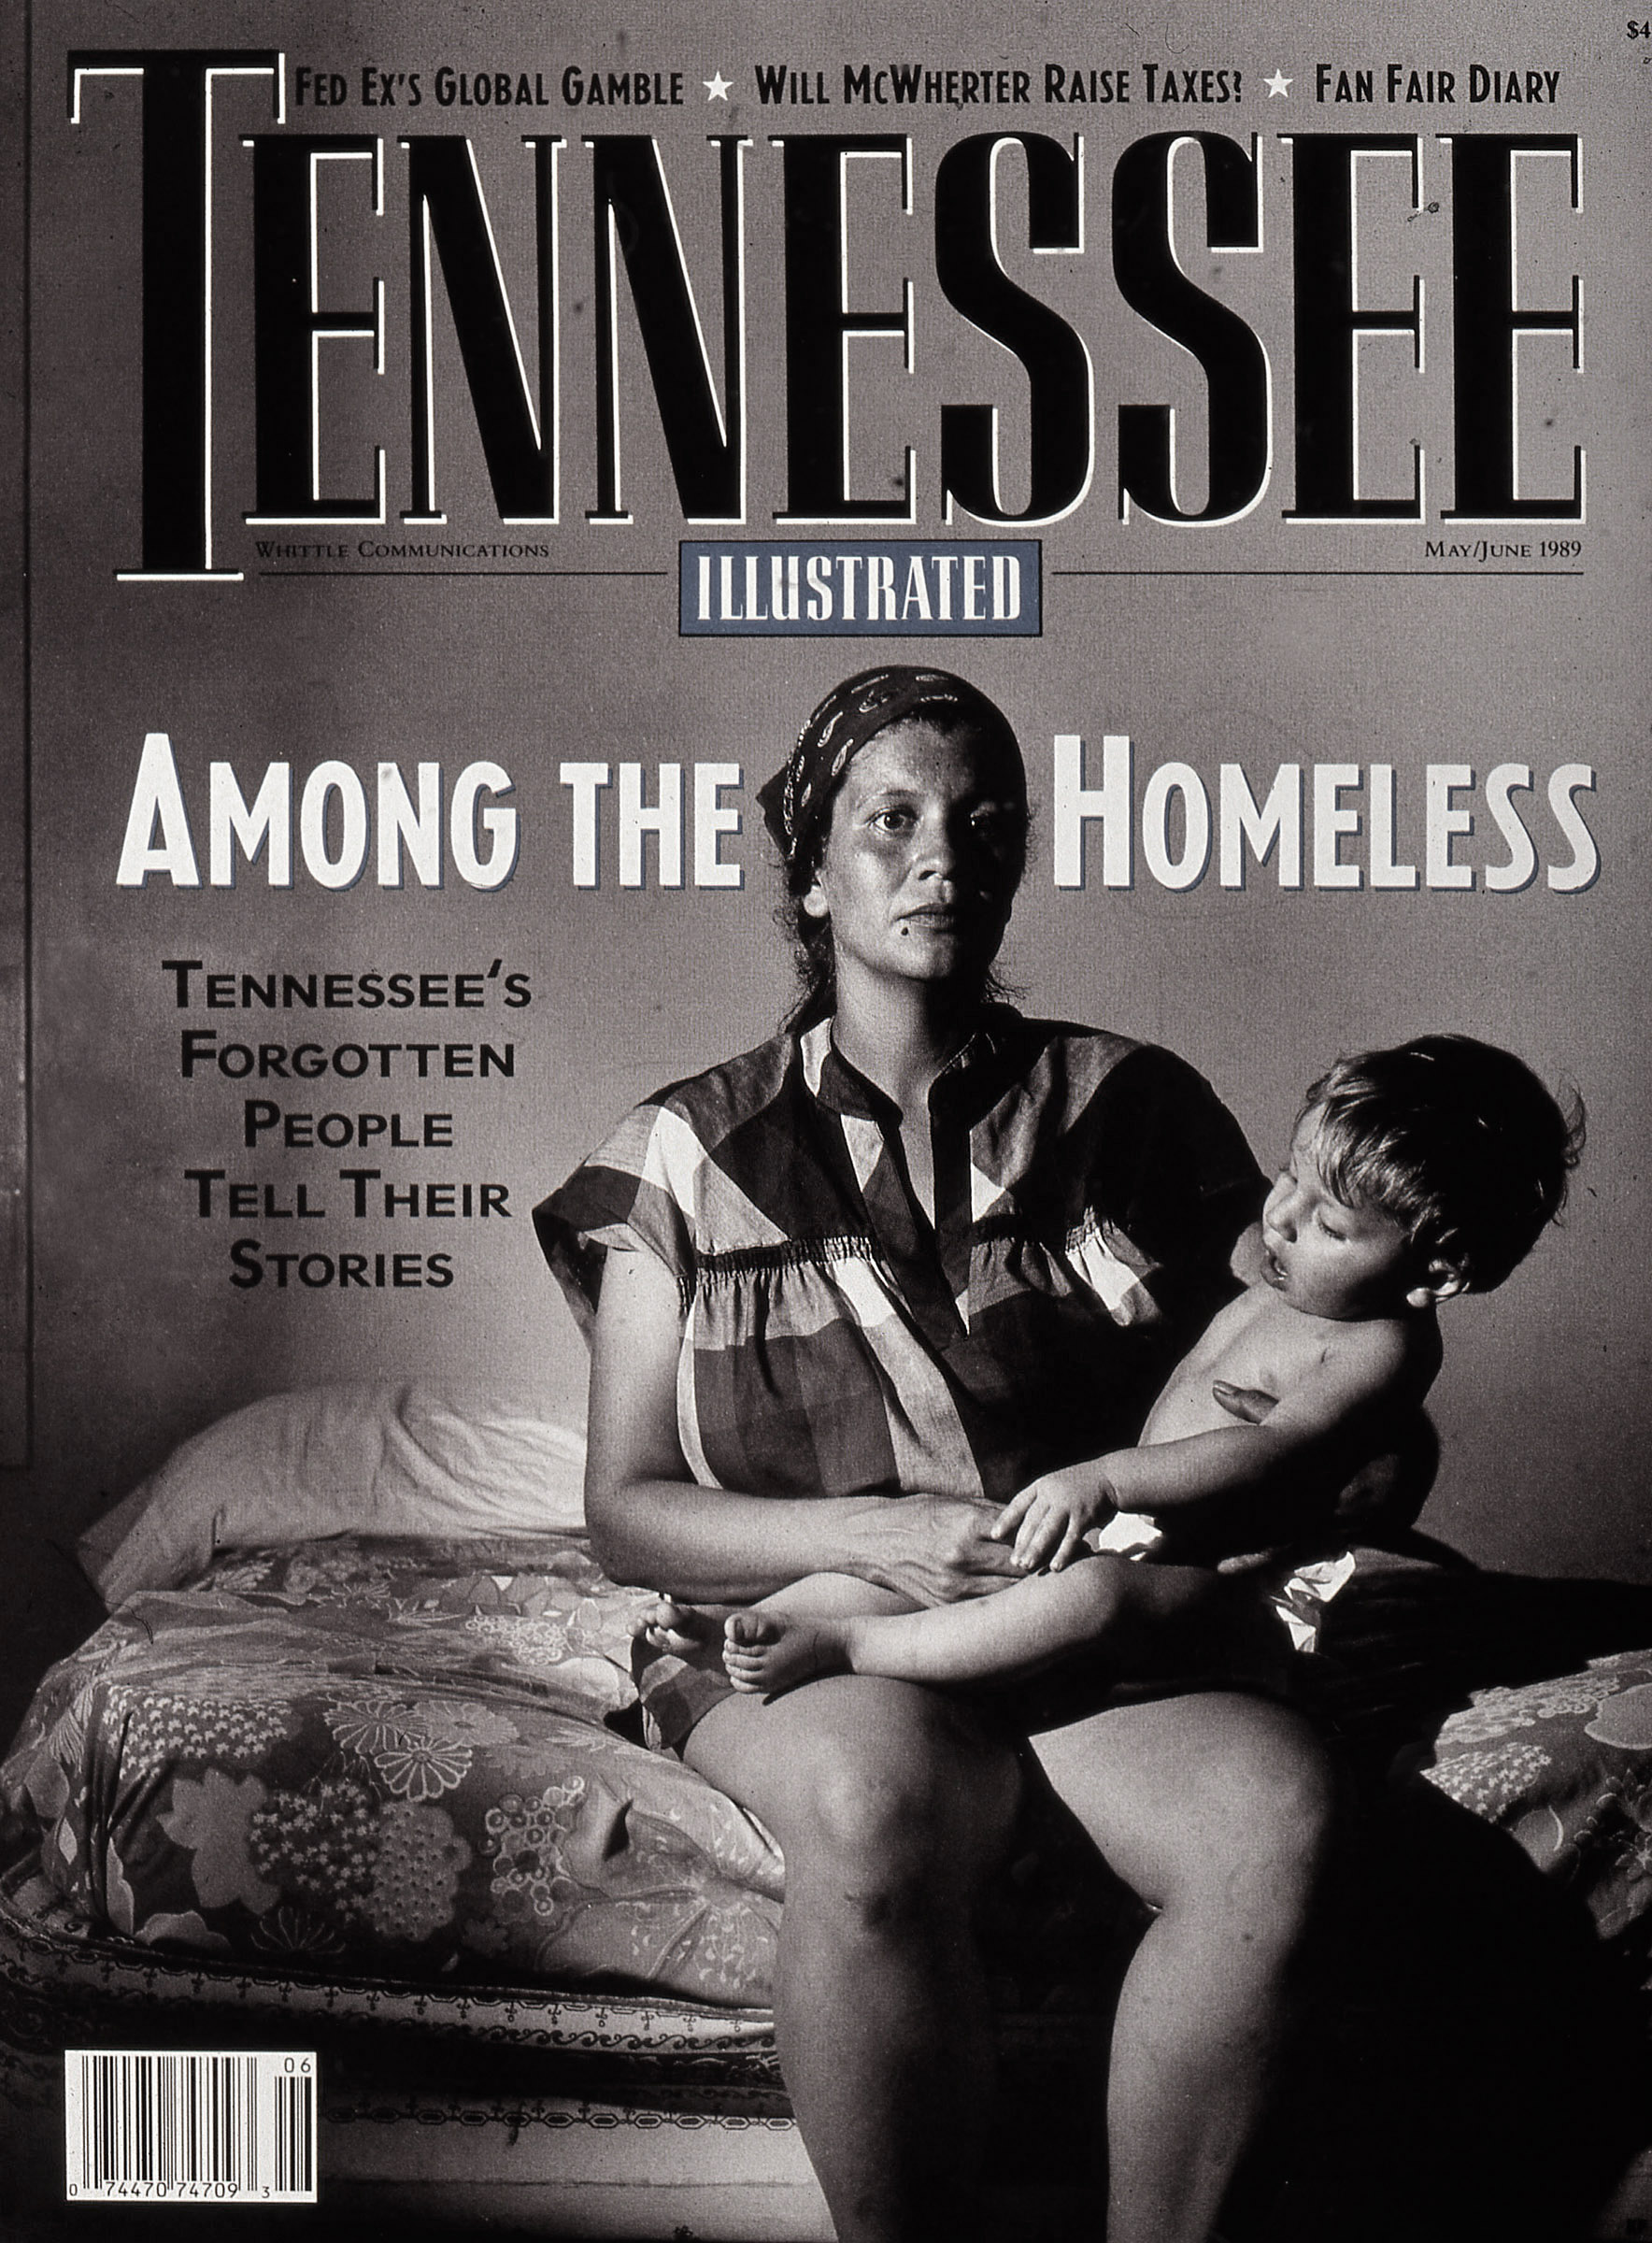 Homeless/Tennessee